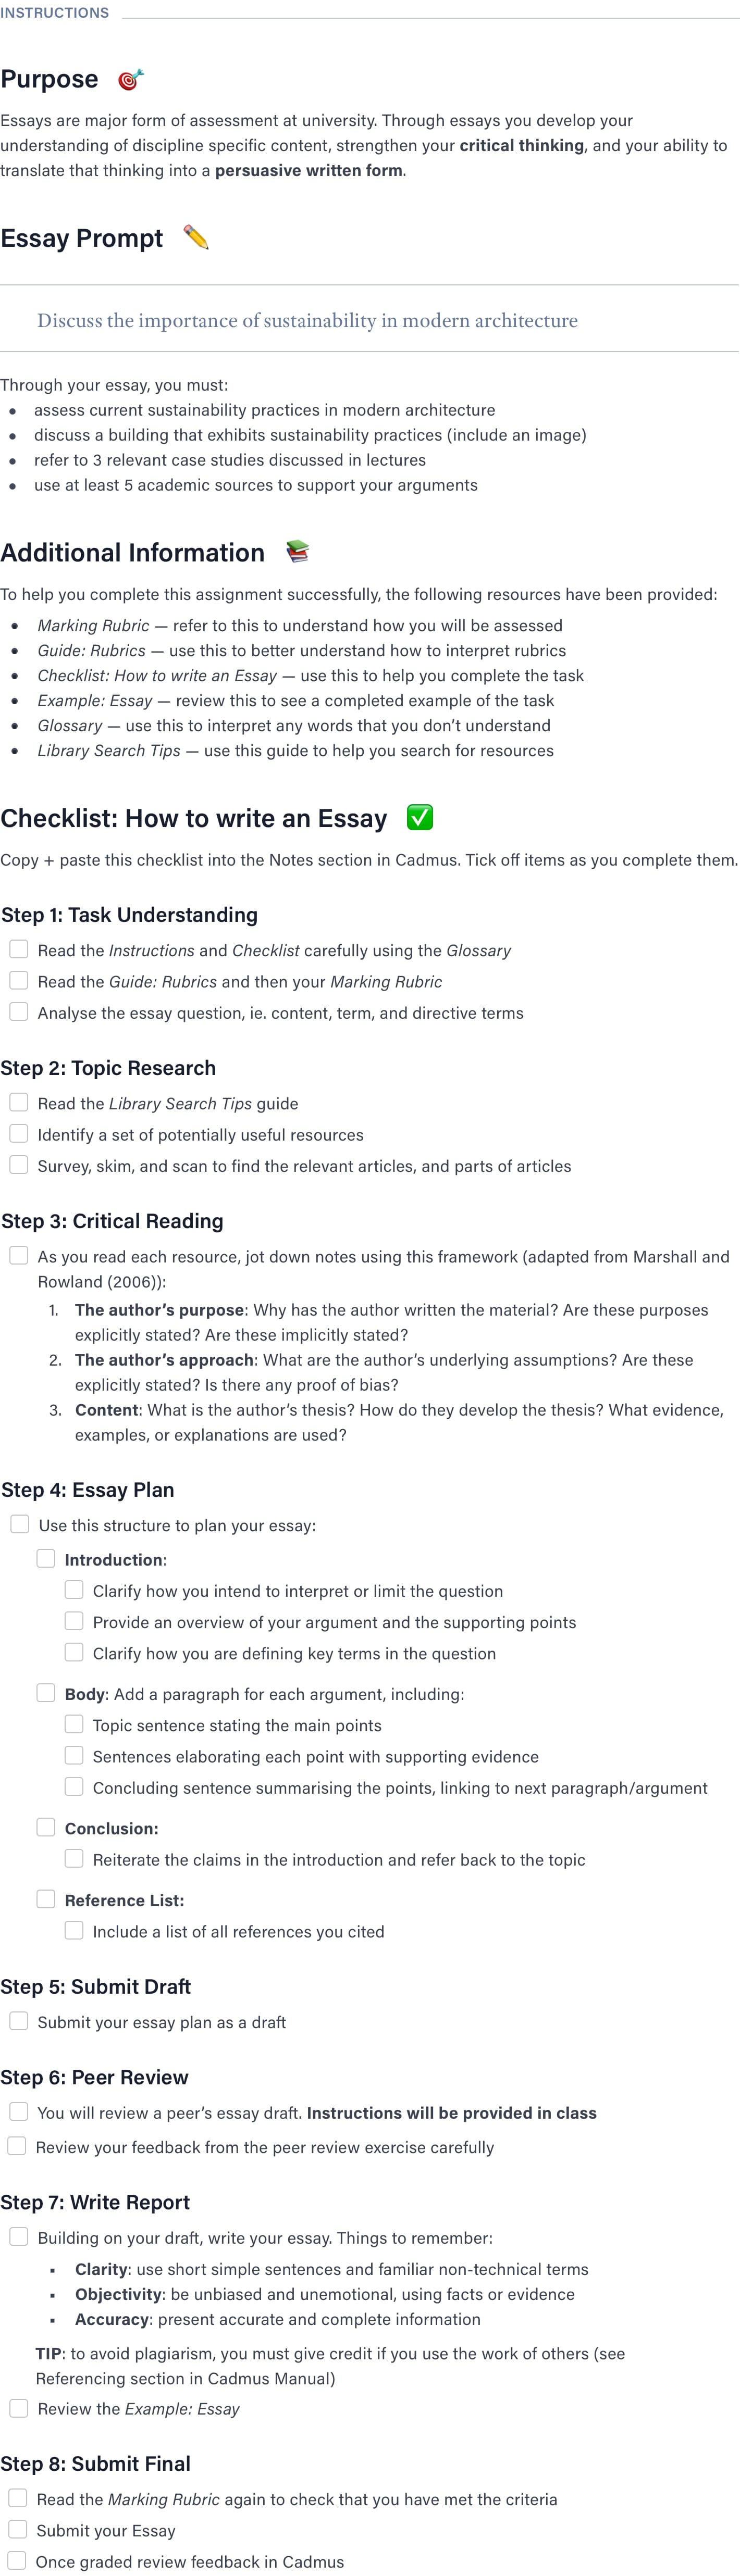 Structure of opinion essay ielts